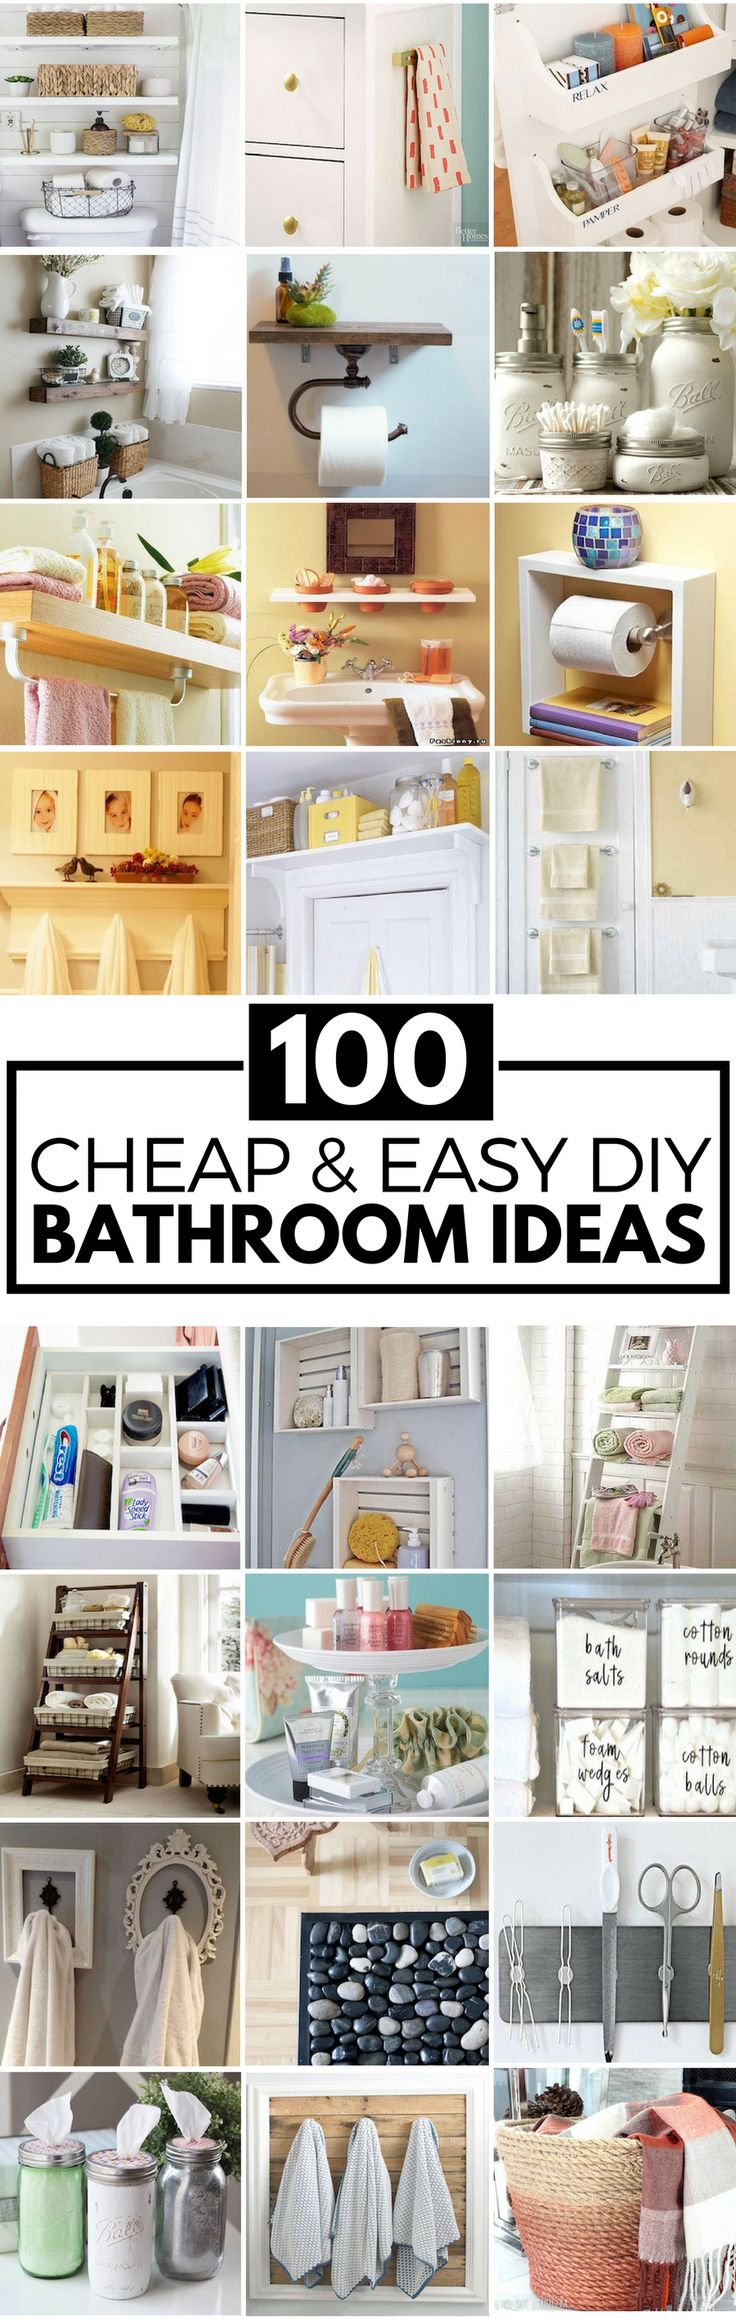 100 Cheap and Easy DIY Bathroom Ideas